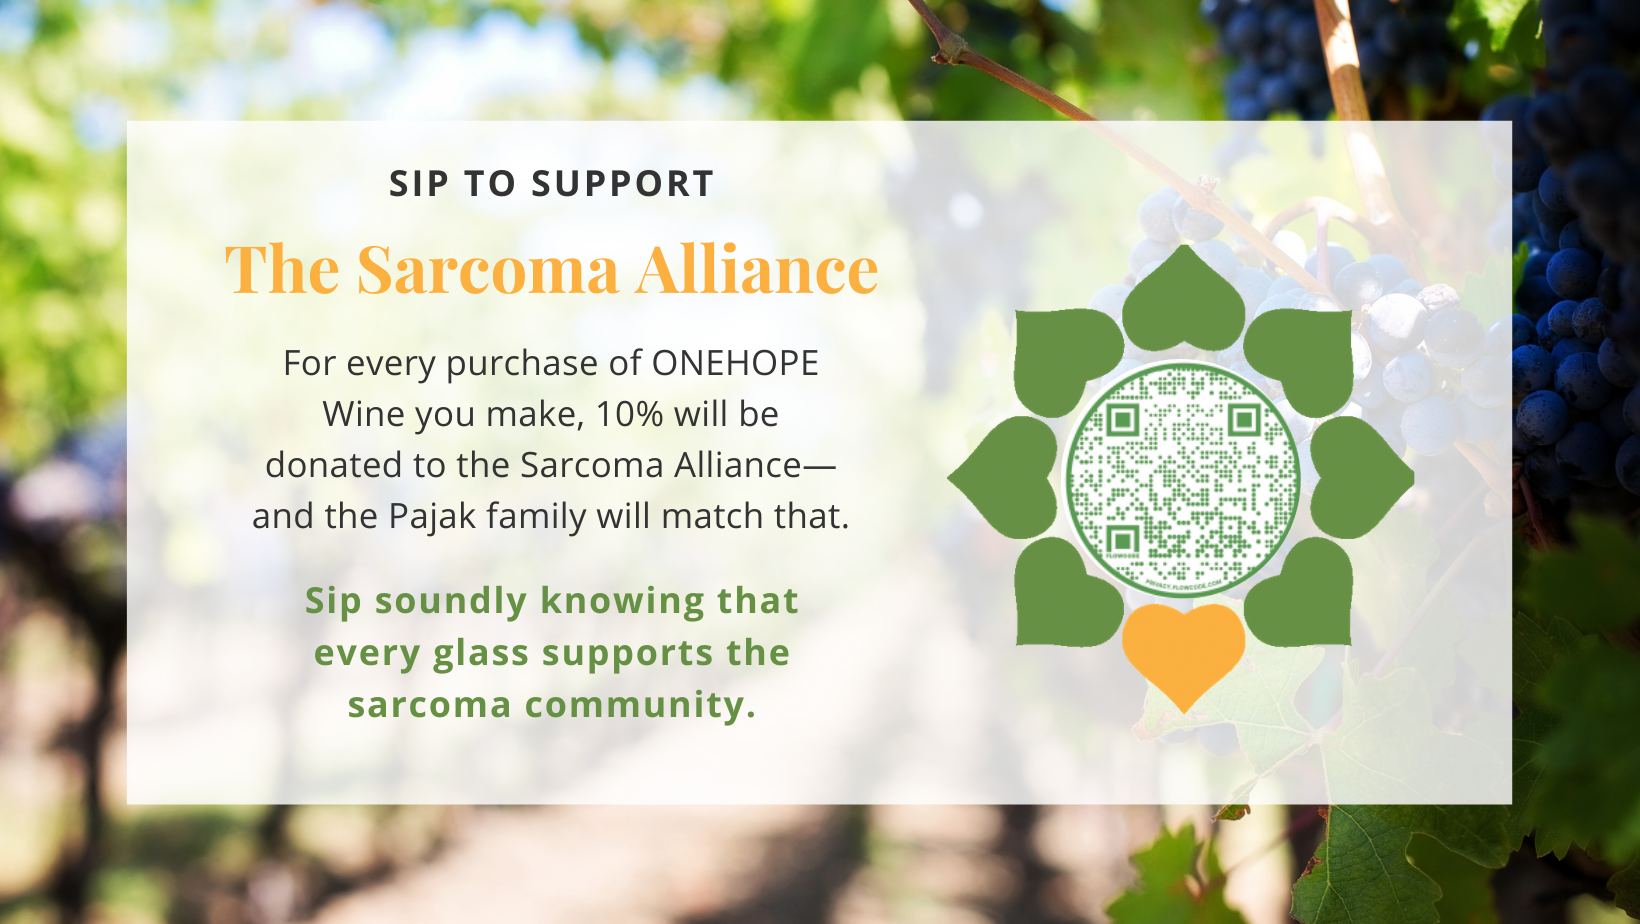 Image with a vineyard background. Text describes partnership with ONEHOPE and how for each purchase you make, 10%--plus a match from the Pajak family--will be donated us.